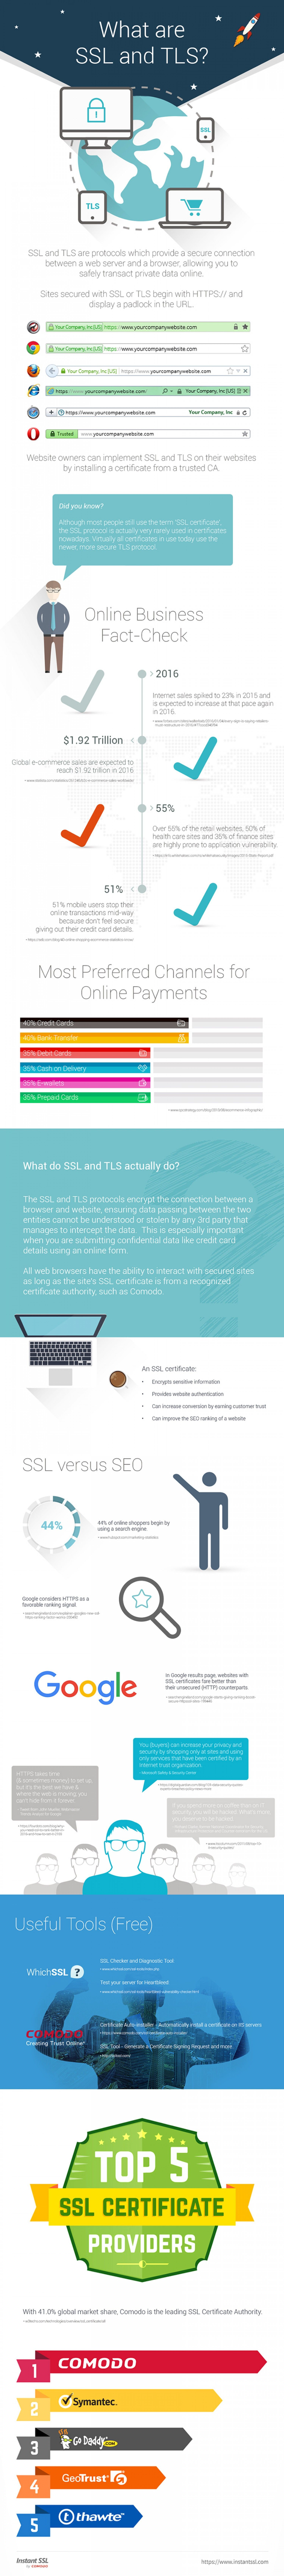 Ssl certificates moving your site to https for better seo in ssl certificates moving your site to https for better seo in 2017 ssl certificates pinterest xflitez Images